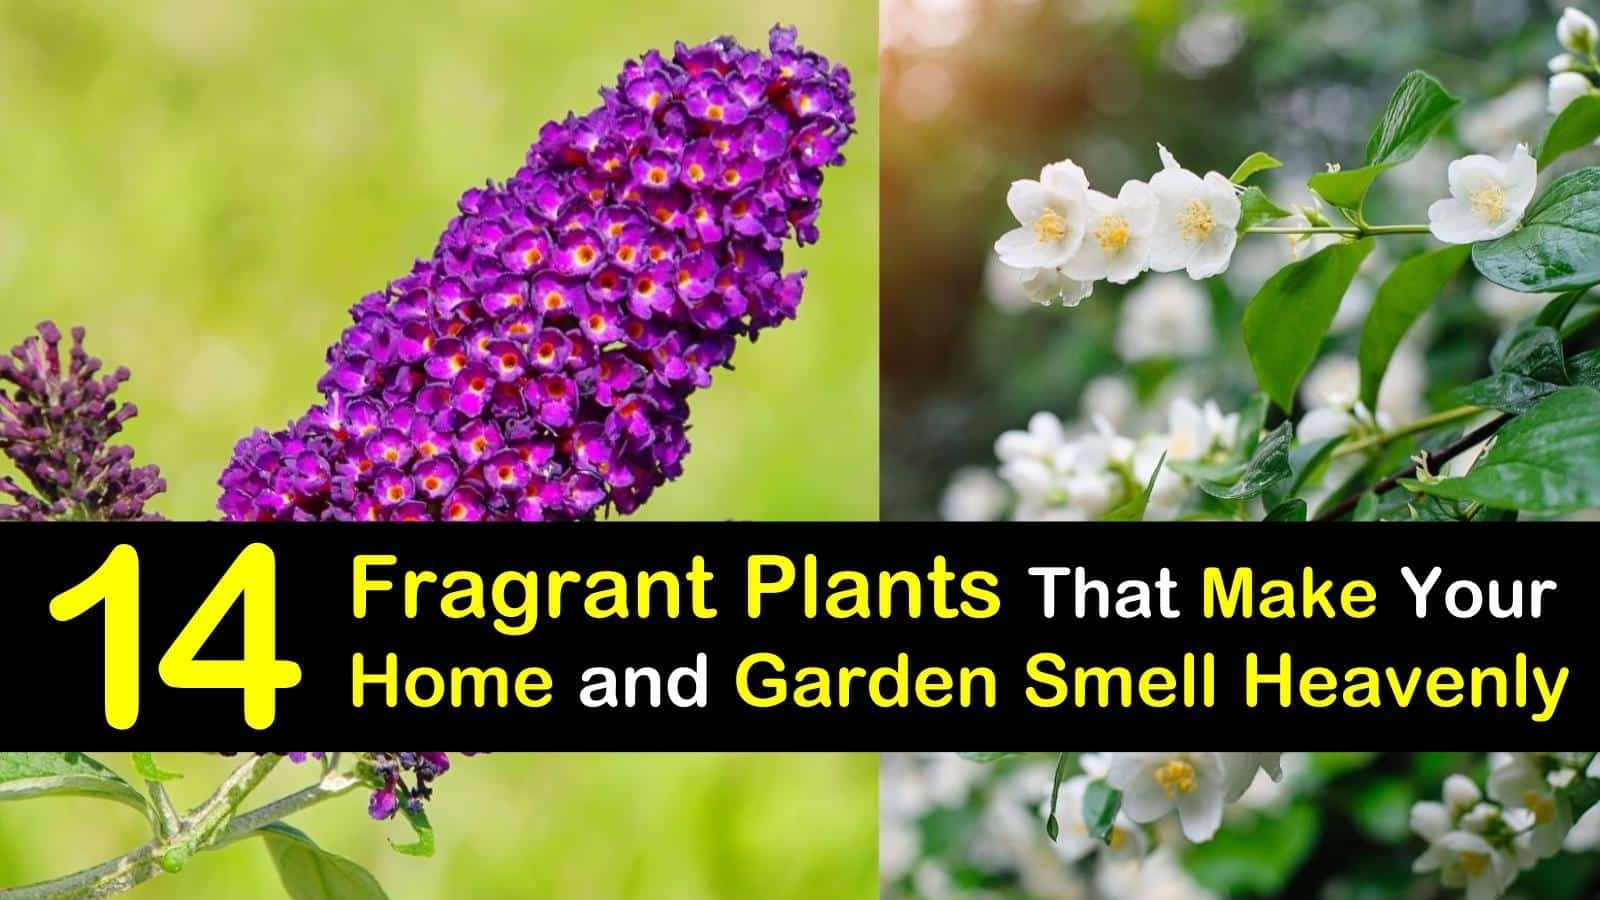 14 Fragrant Plants That Make Your Home And Garden Smell Heavenly intended for Garden Flowers That Smell Nice